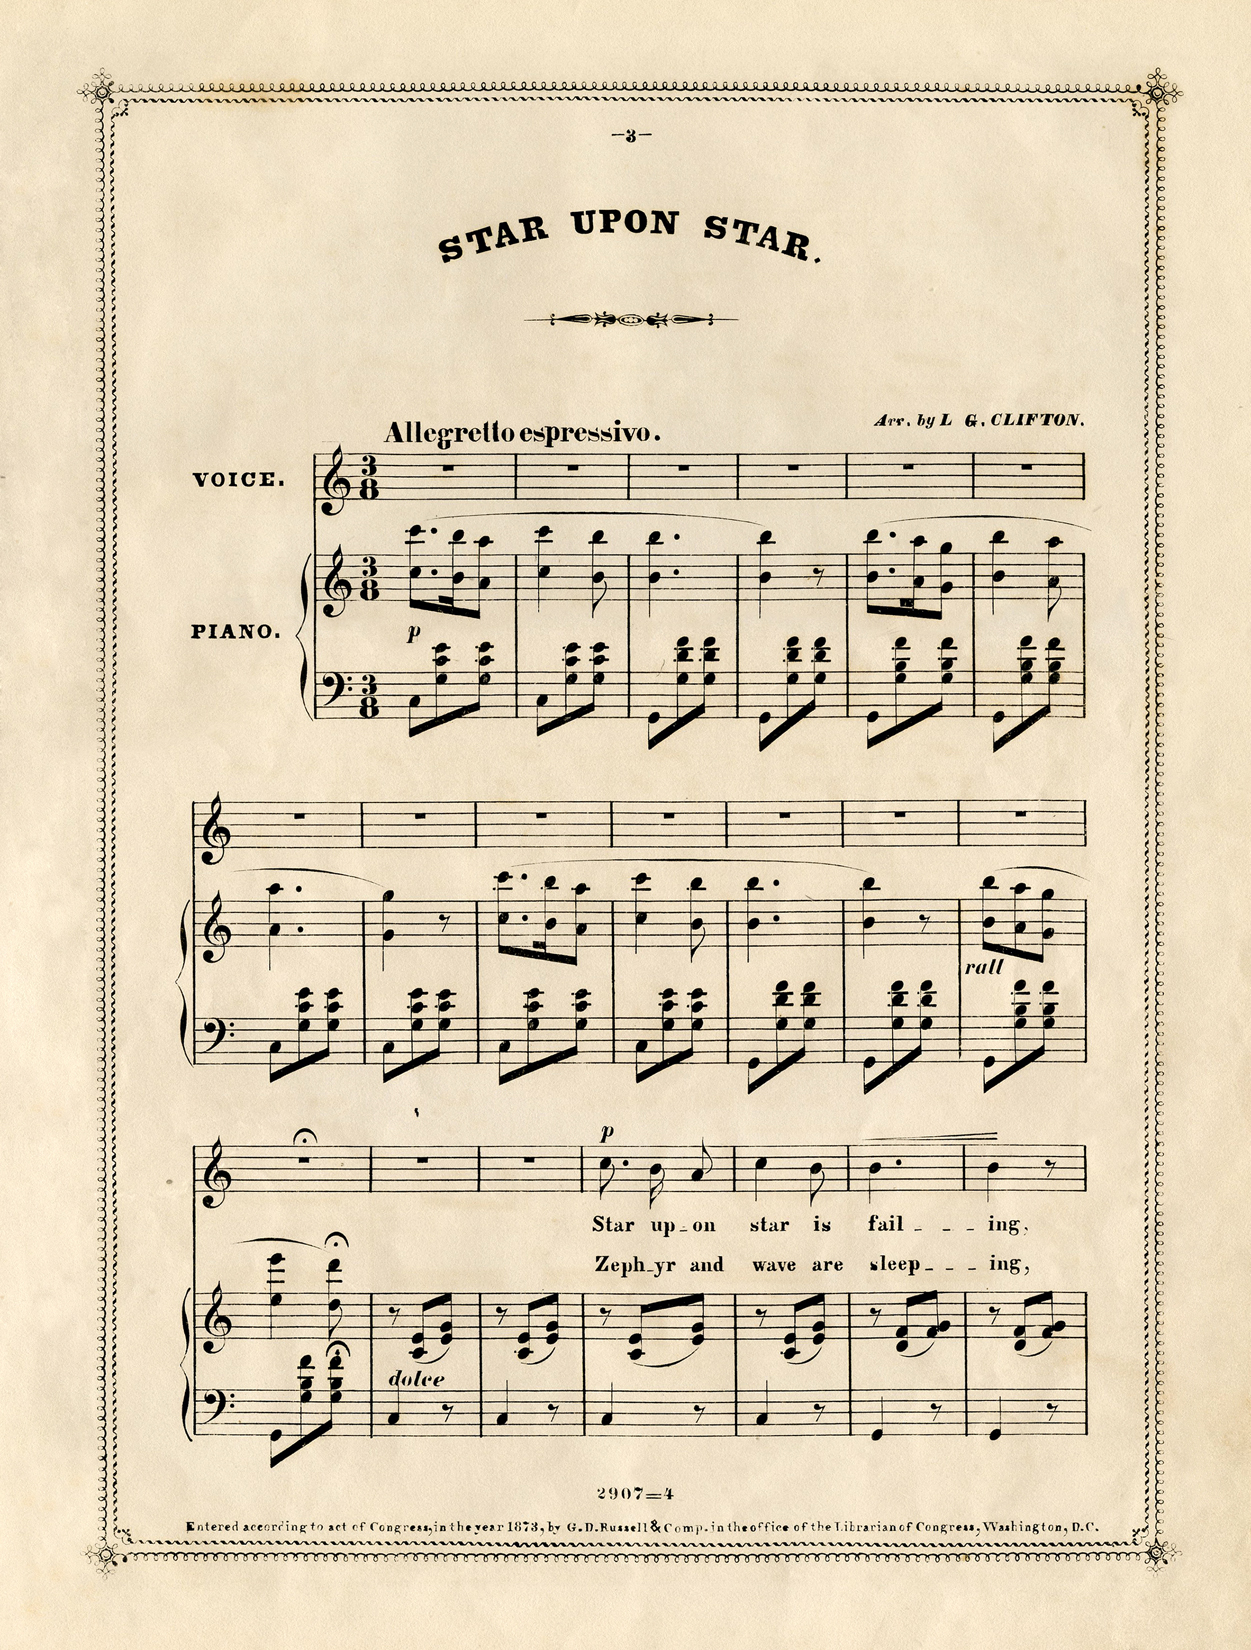 photograph regarding Vintage Sheet Music Printable named Totally free Common Sheet Songs - The Graphics Fairy